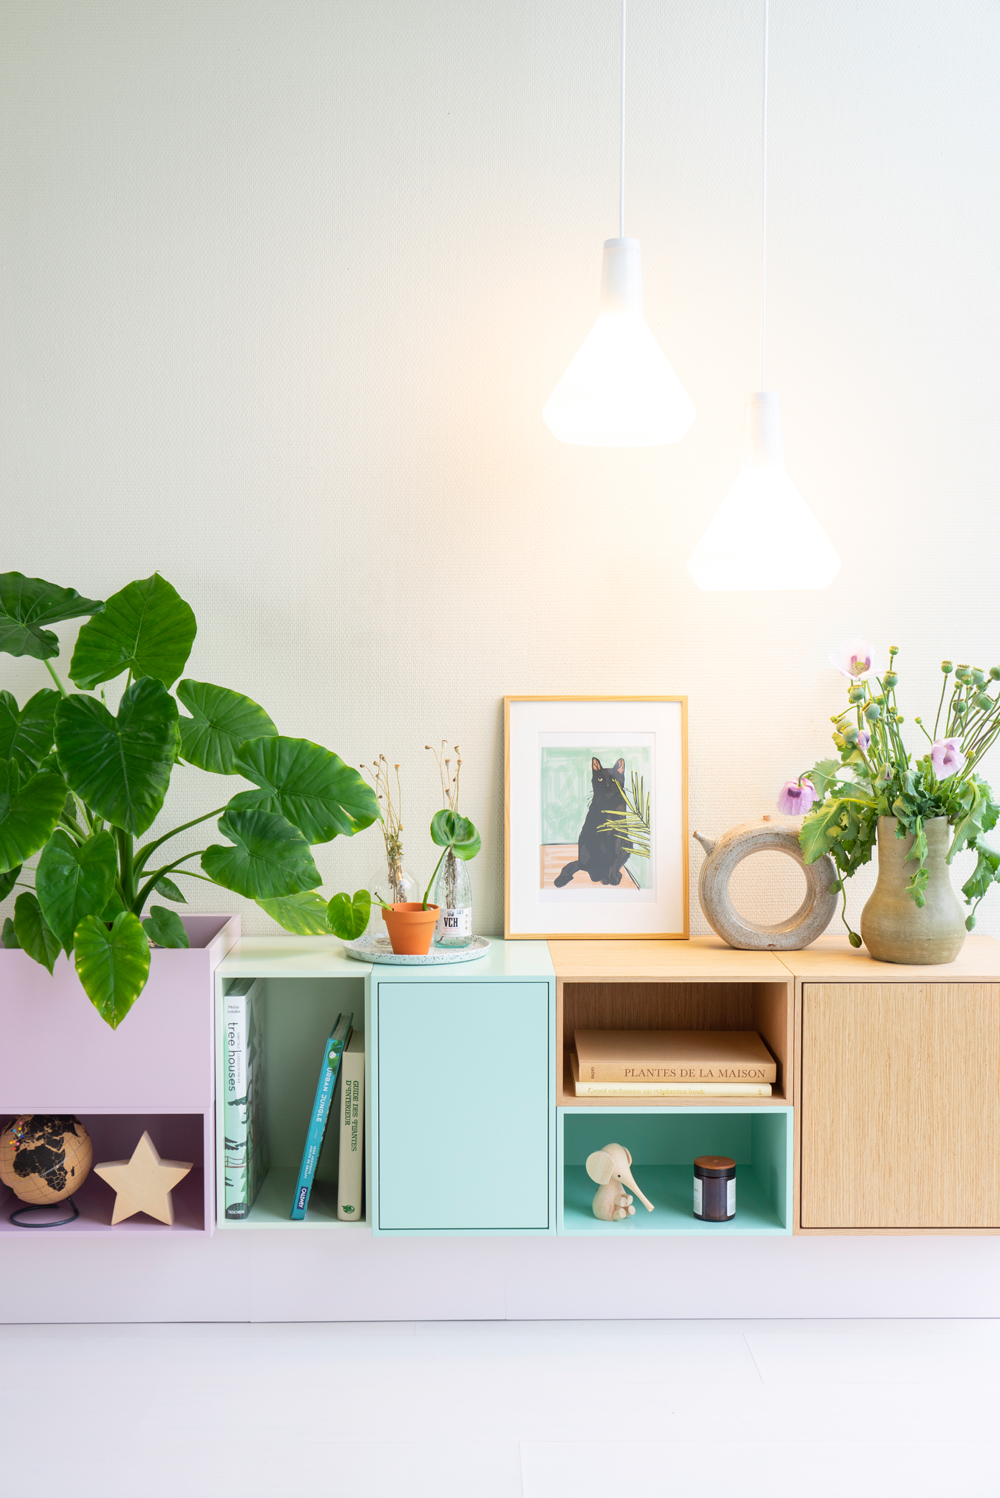 JOELIX.com | Our new rainbow sideboard from Cubit #cubitshop #urbanjunglebloggers